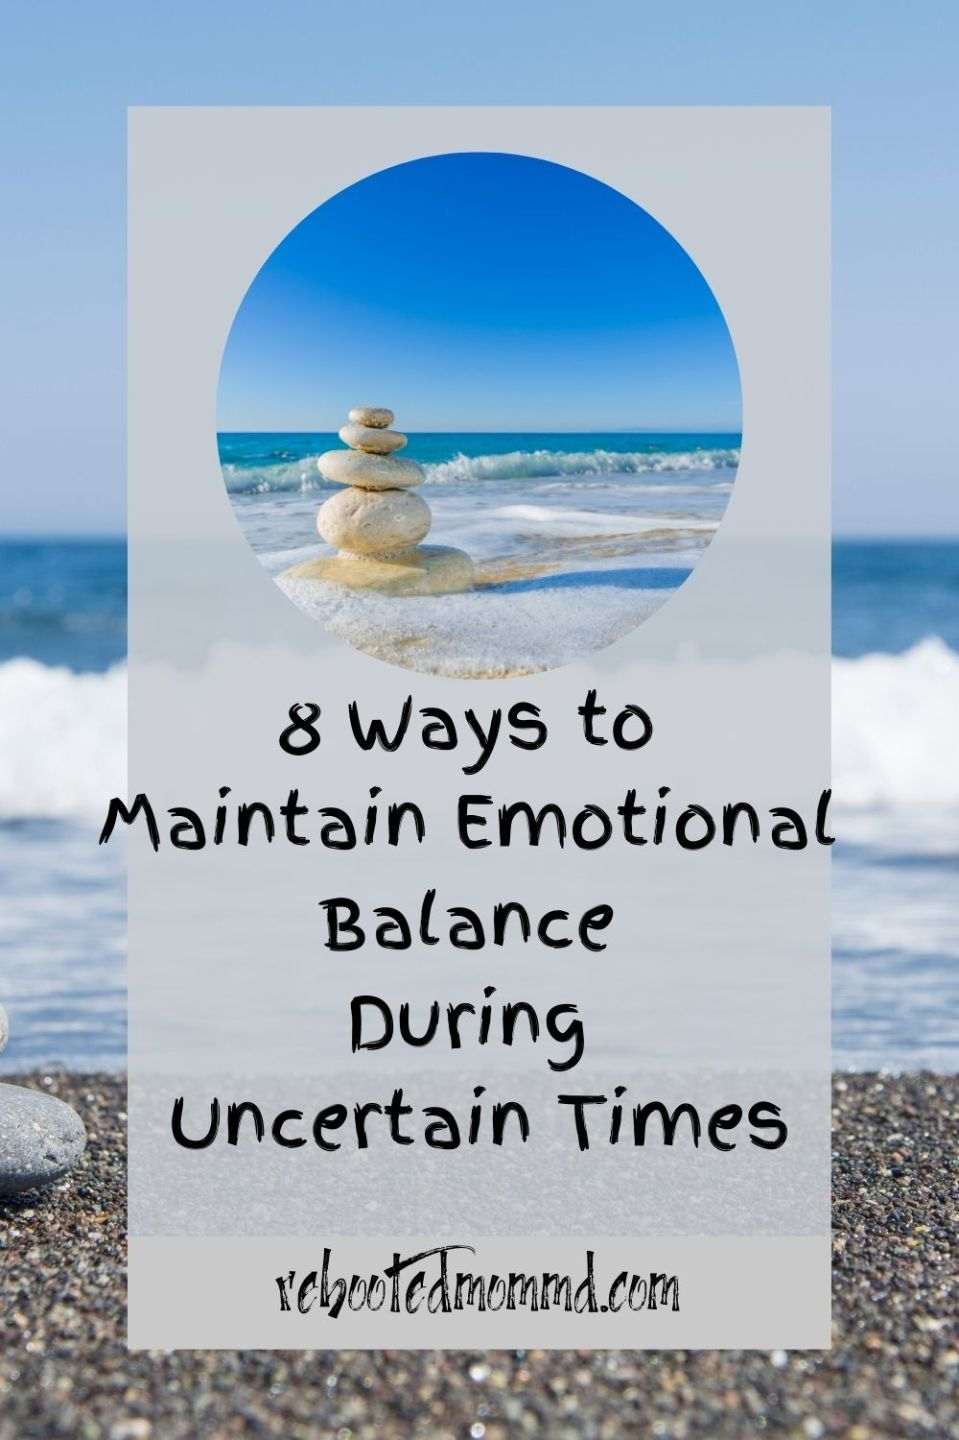 8 Ways to Maintain Emotional Balance During Uncertain Times